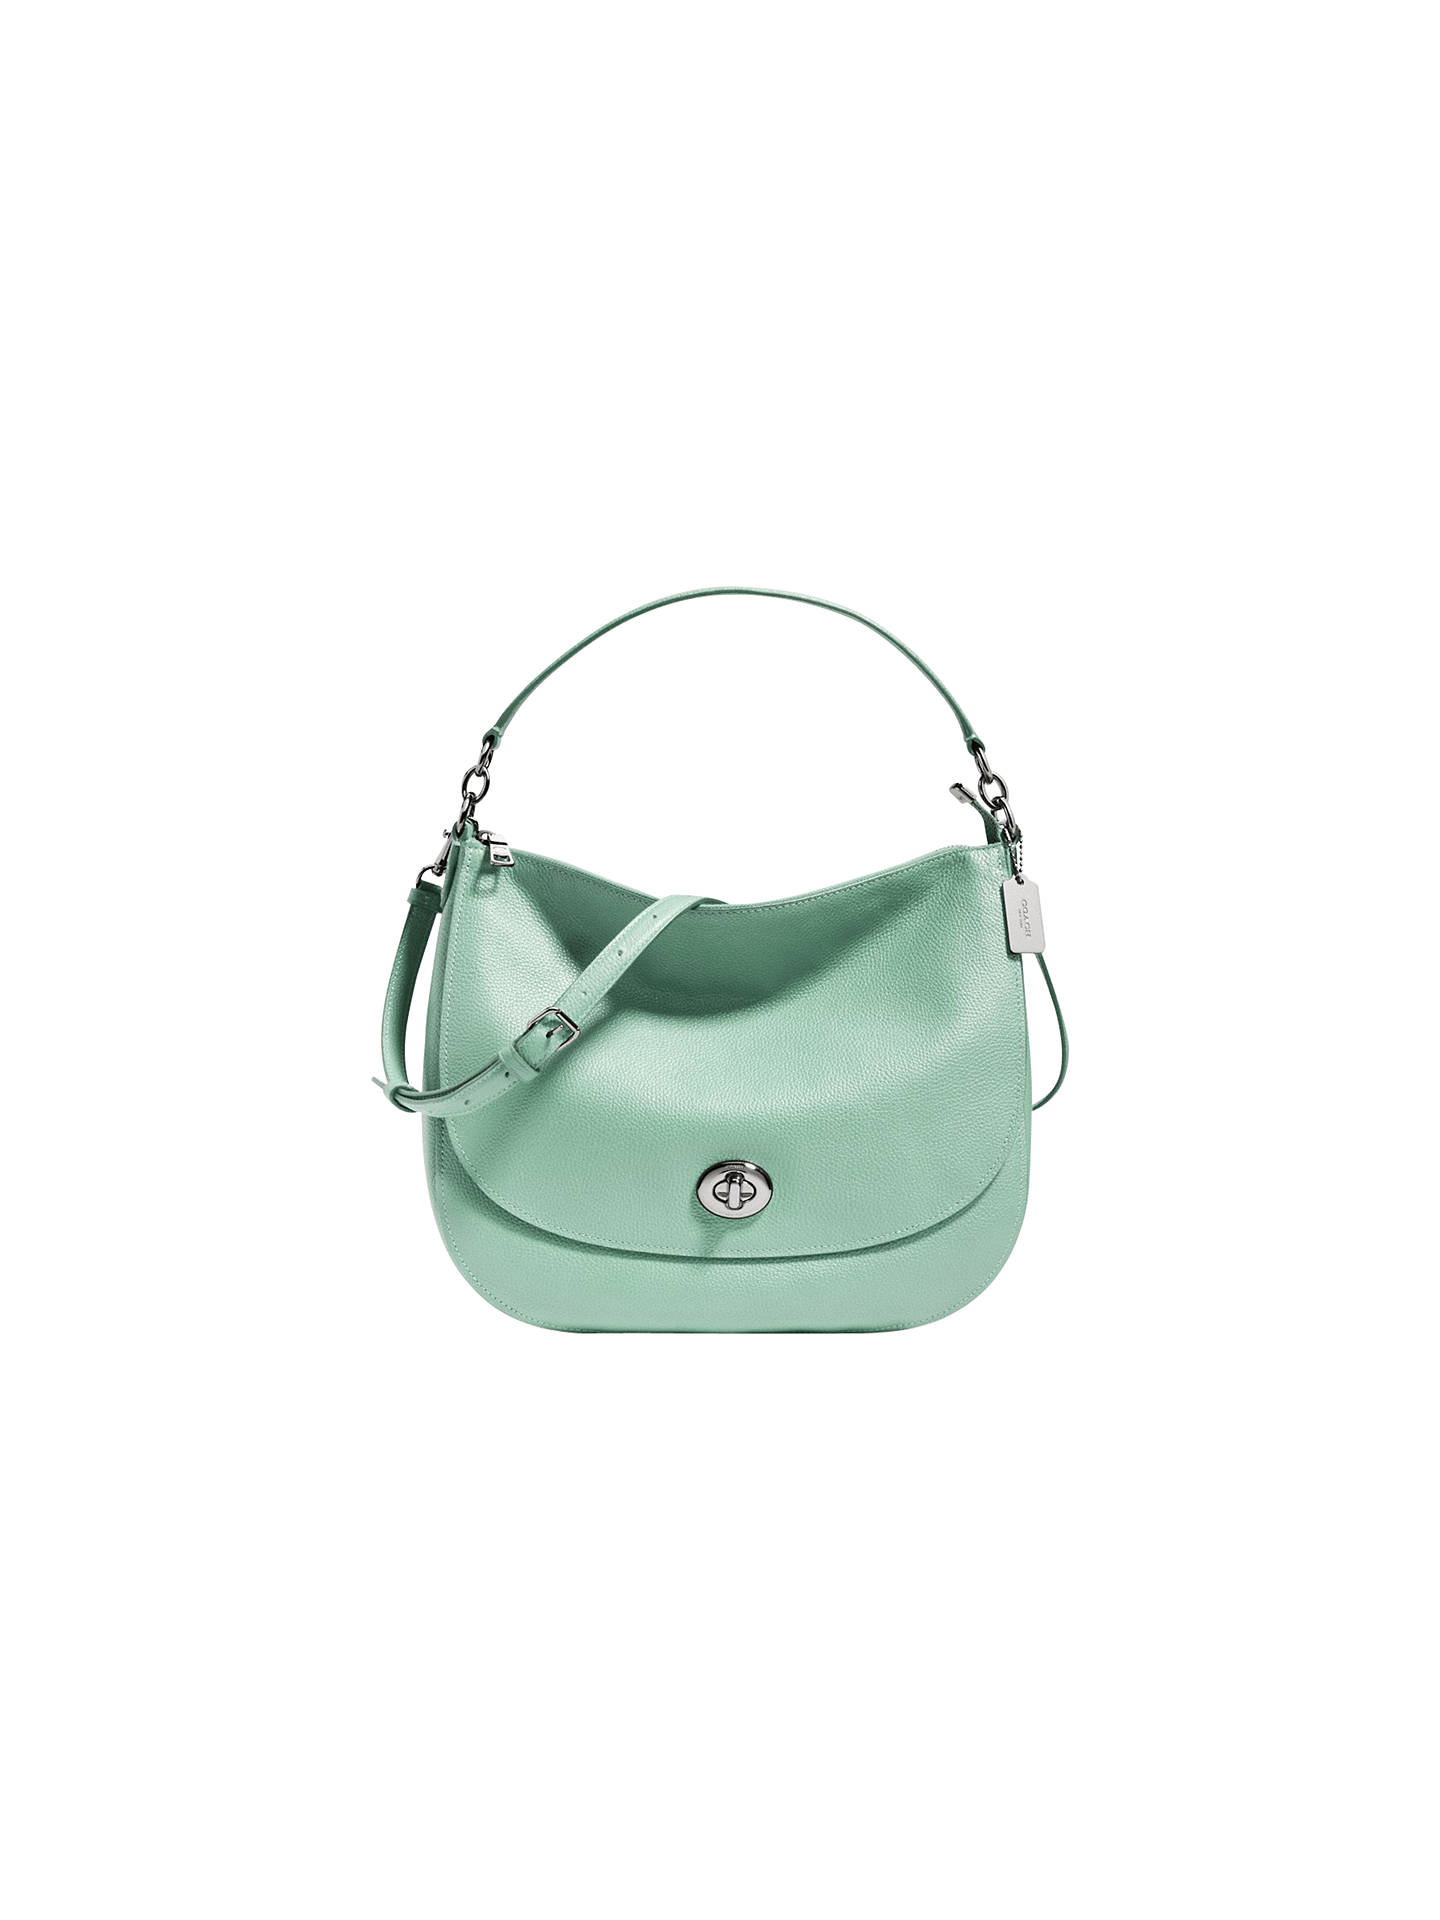 Coach Turnlock Leather Hobo Bag at John Lewis   Partners 33e7089cdab89